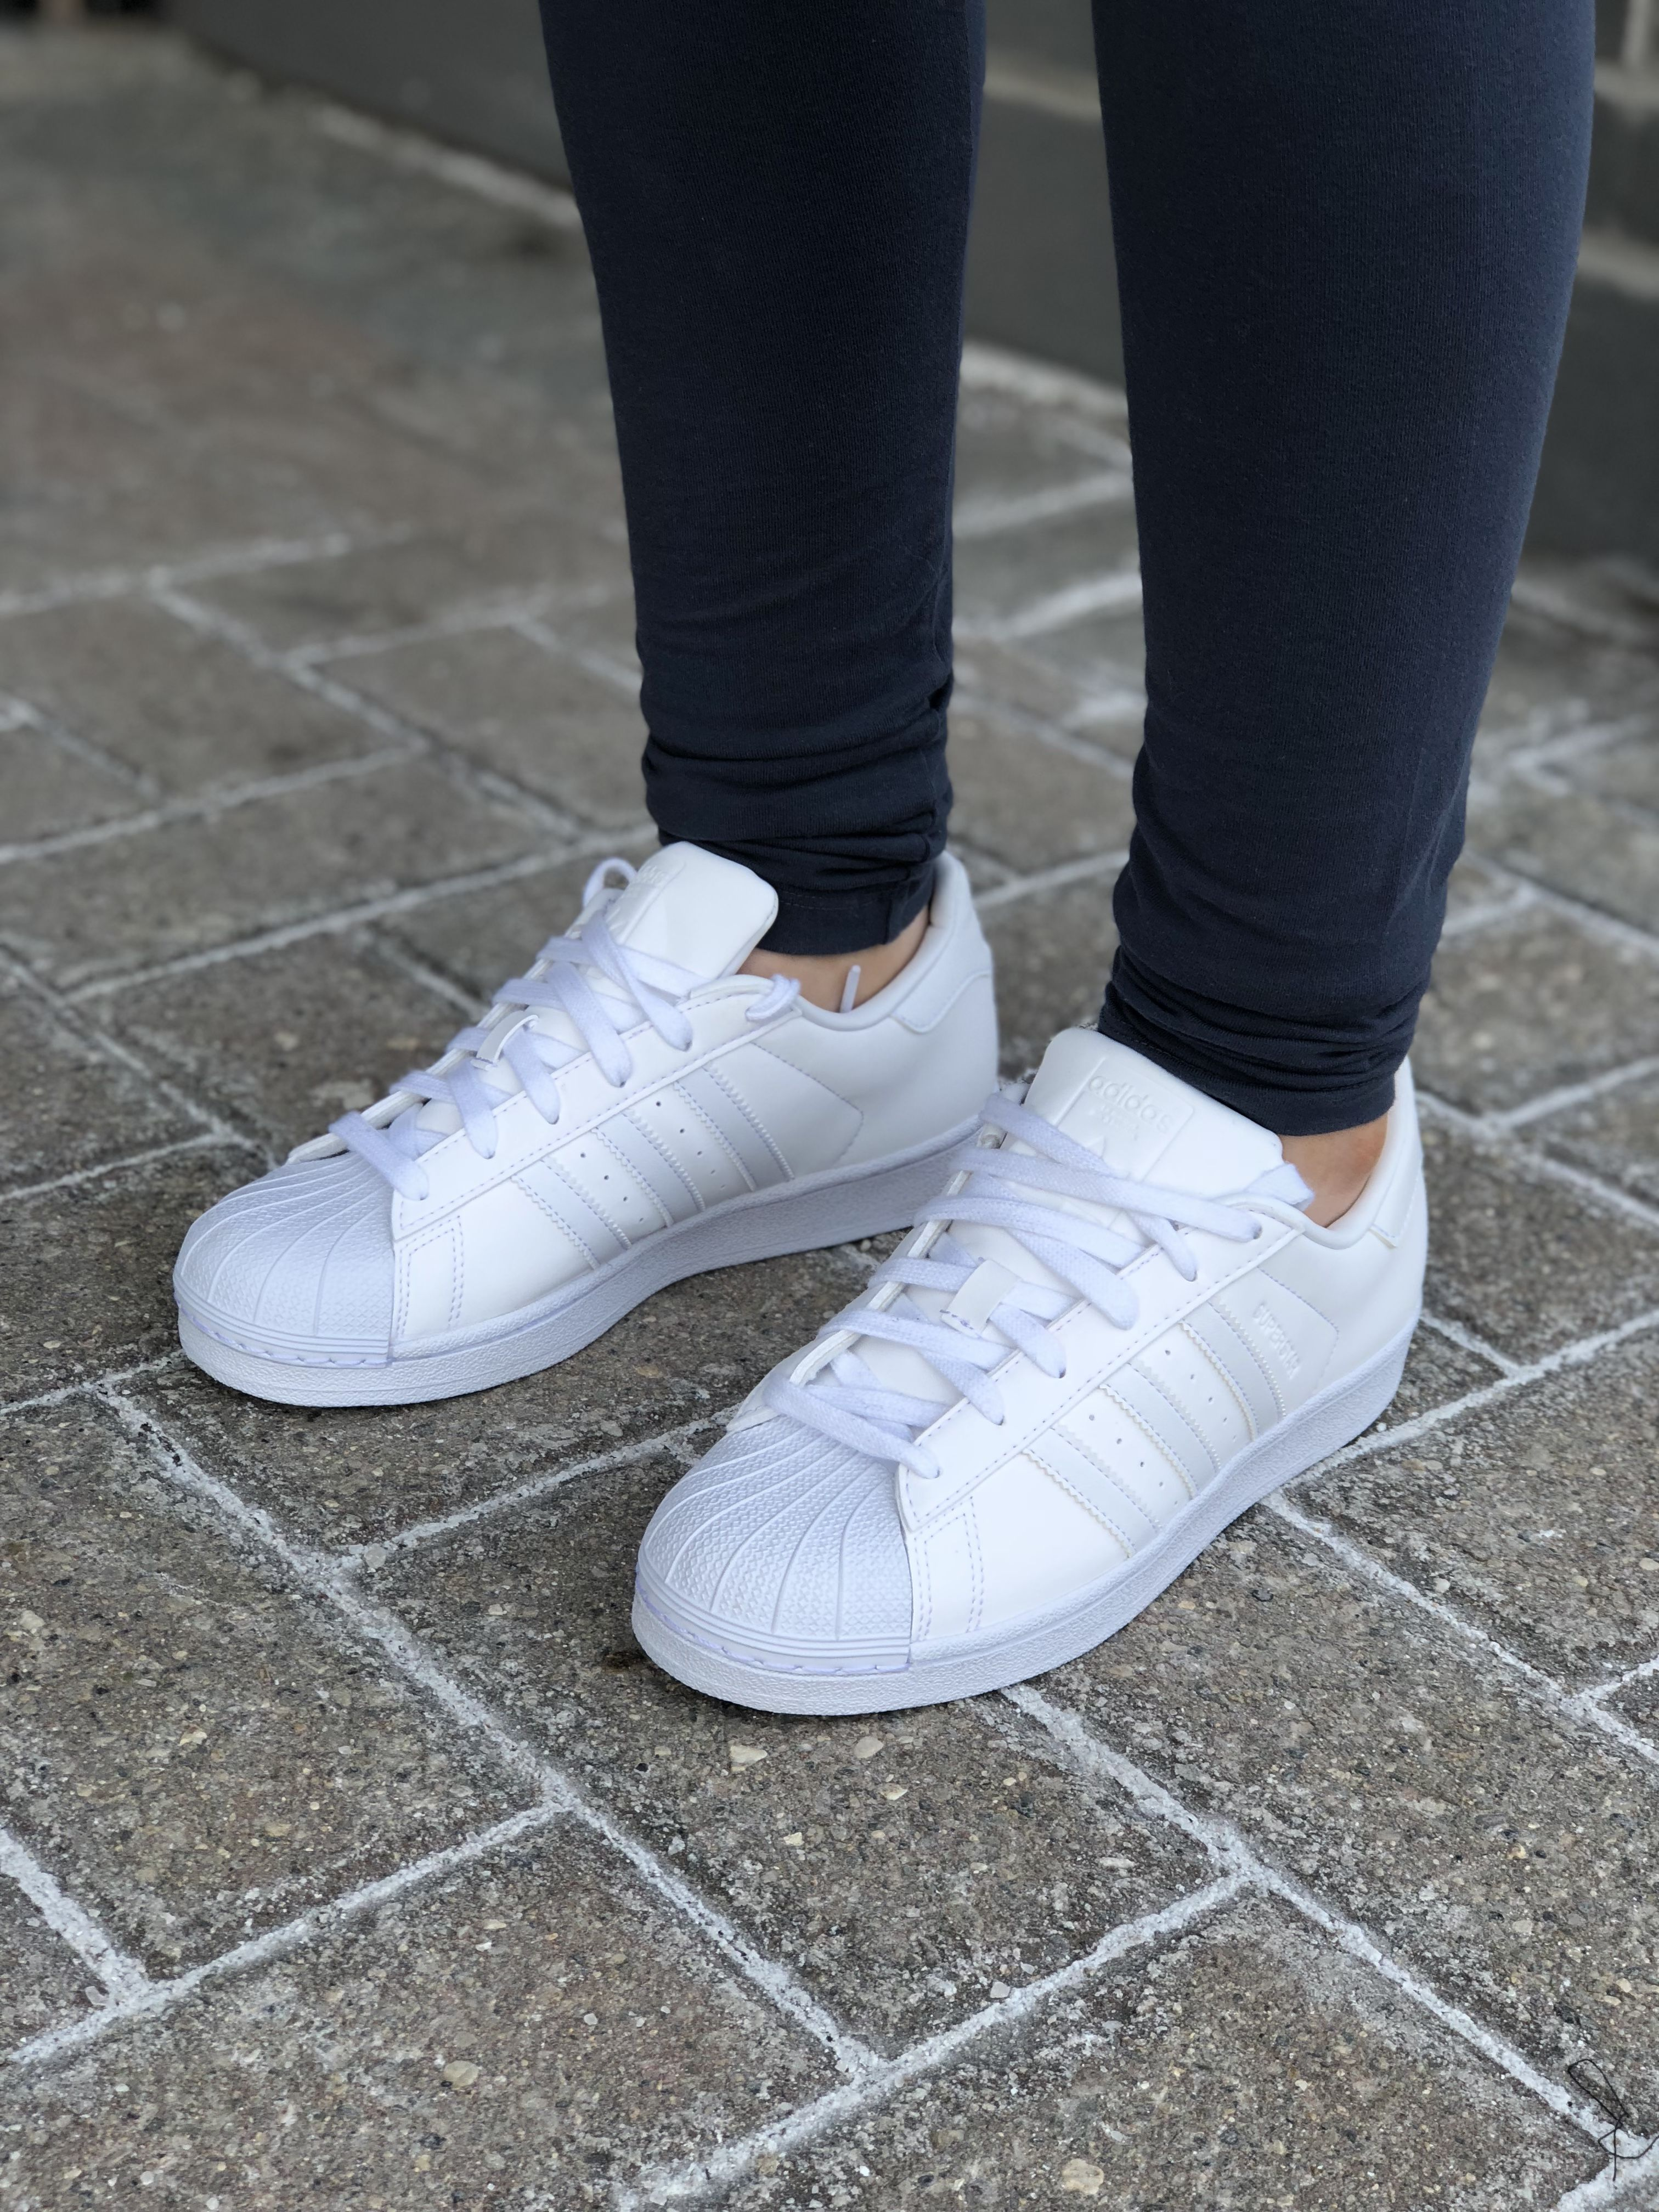 44ee2e79bf13d Spring 2018 Collection Womens Adidas Superstar